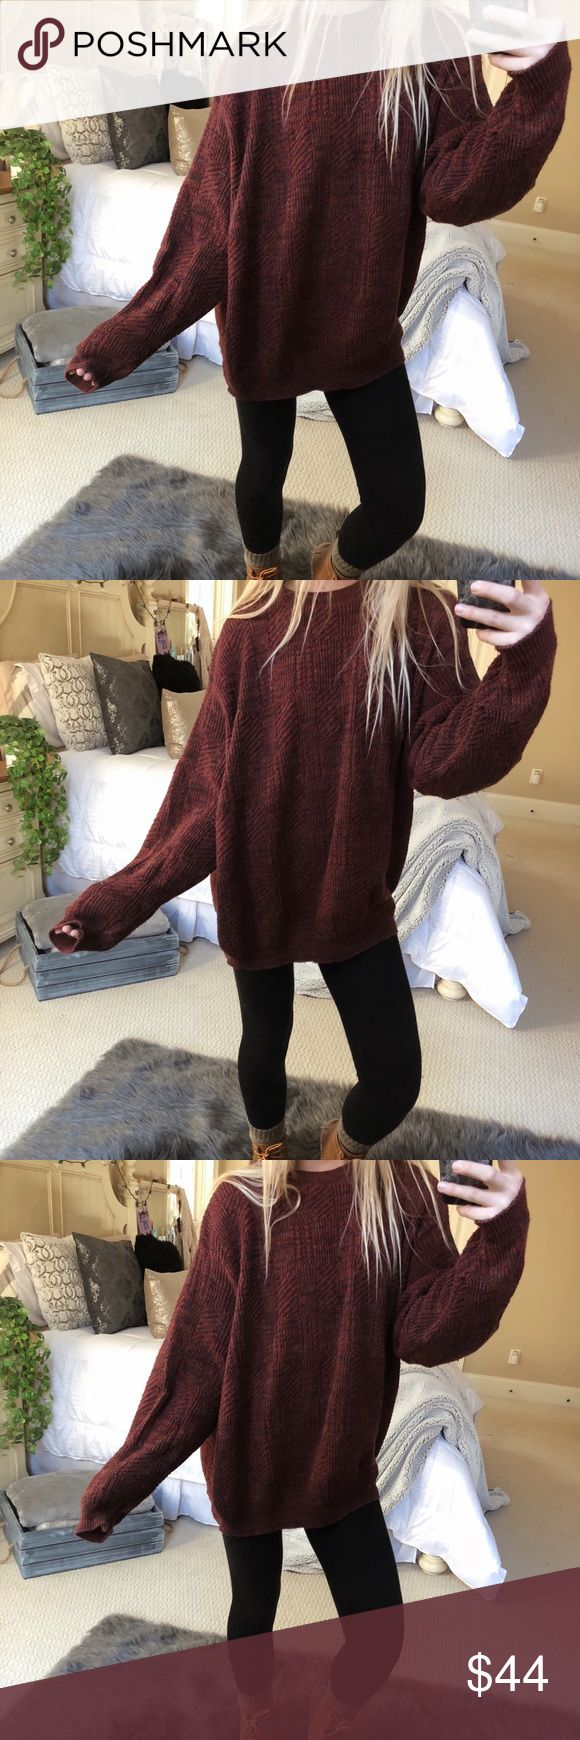 rust chunky knitted sweater super gorgeous and cozy rust + burgundy blended chunky knit sweater. fits a size medium or large 🍂🥀🌲 — * all offers 100% welcomed + encouraged * bundle for a private discount of at least 20% off  * orders guaranteed to ship within 1-2 days unless stated otherwise * ask me any questions if you ever have any! xo Sweaters